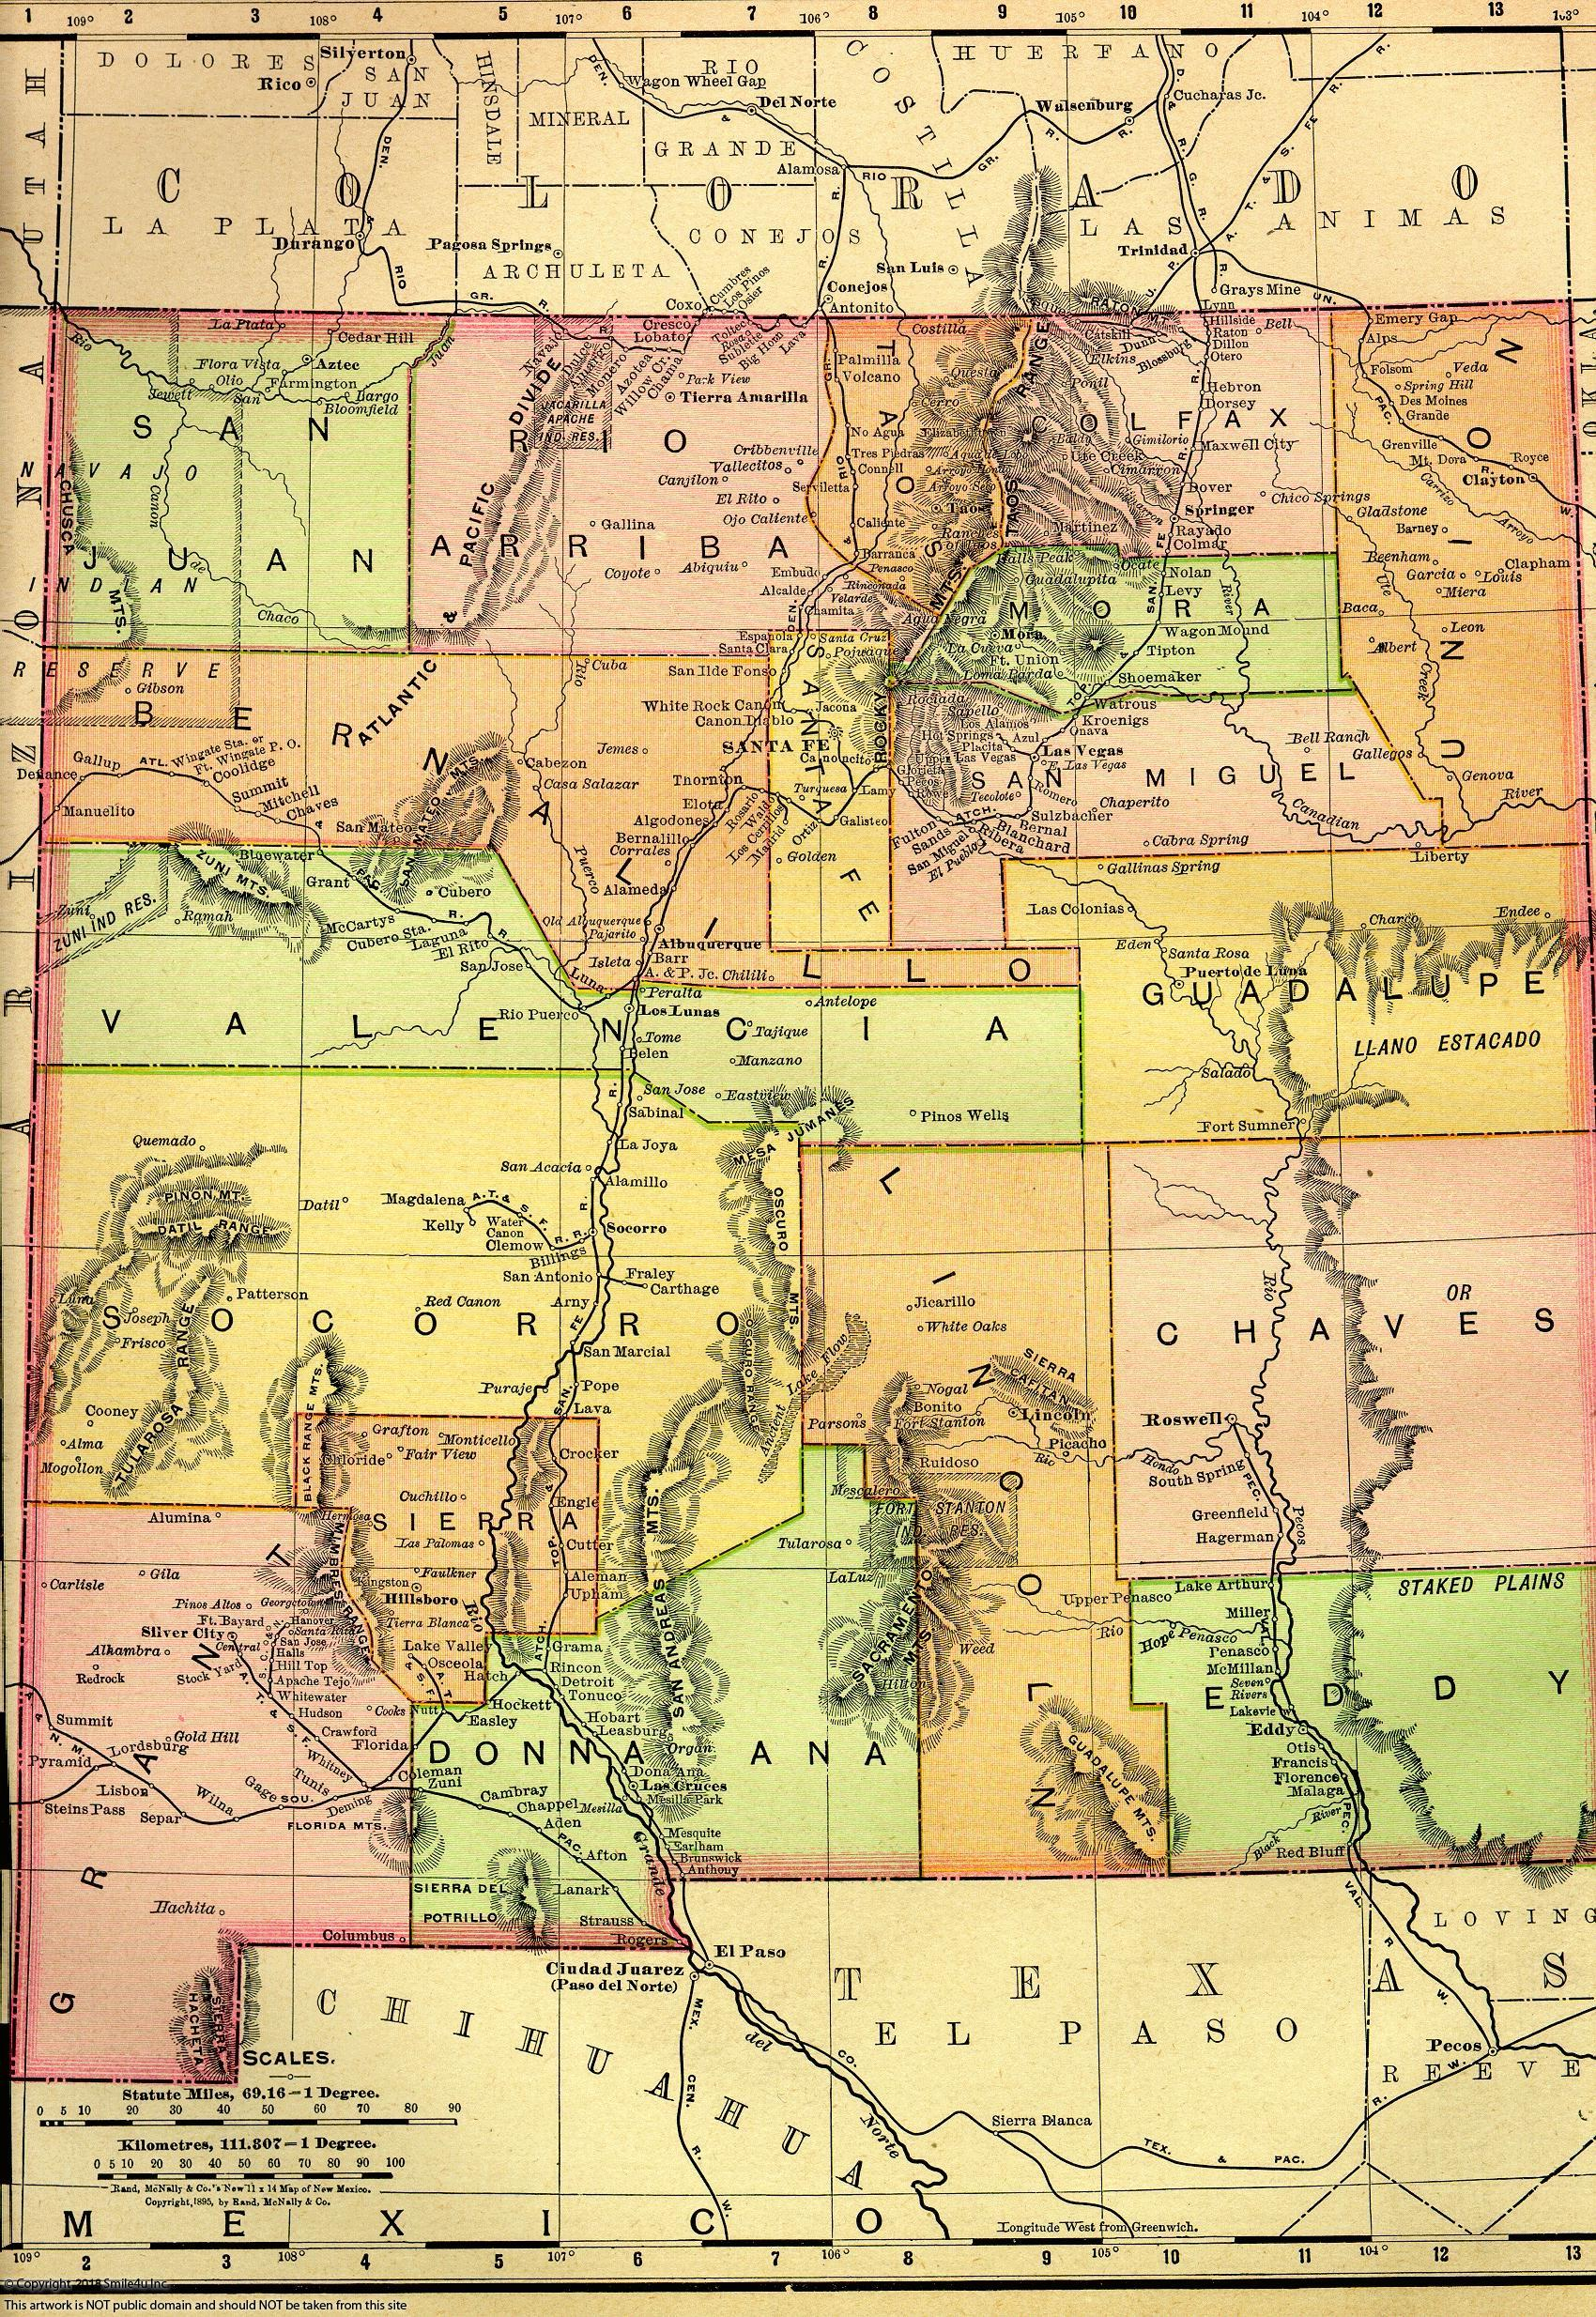 224770_watermarked_New Mexico State Map in 1895.jpg